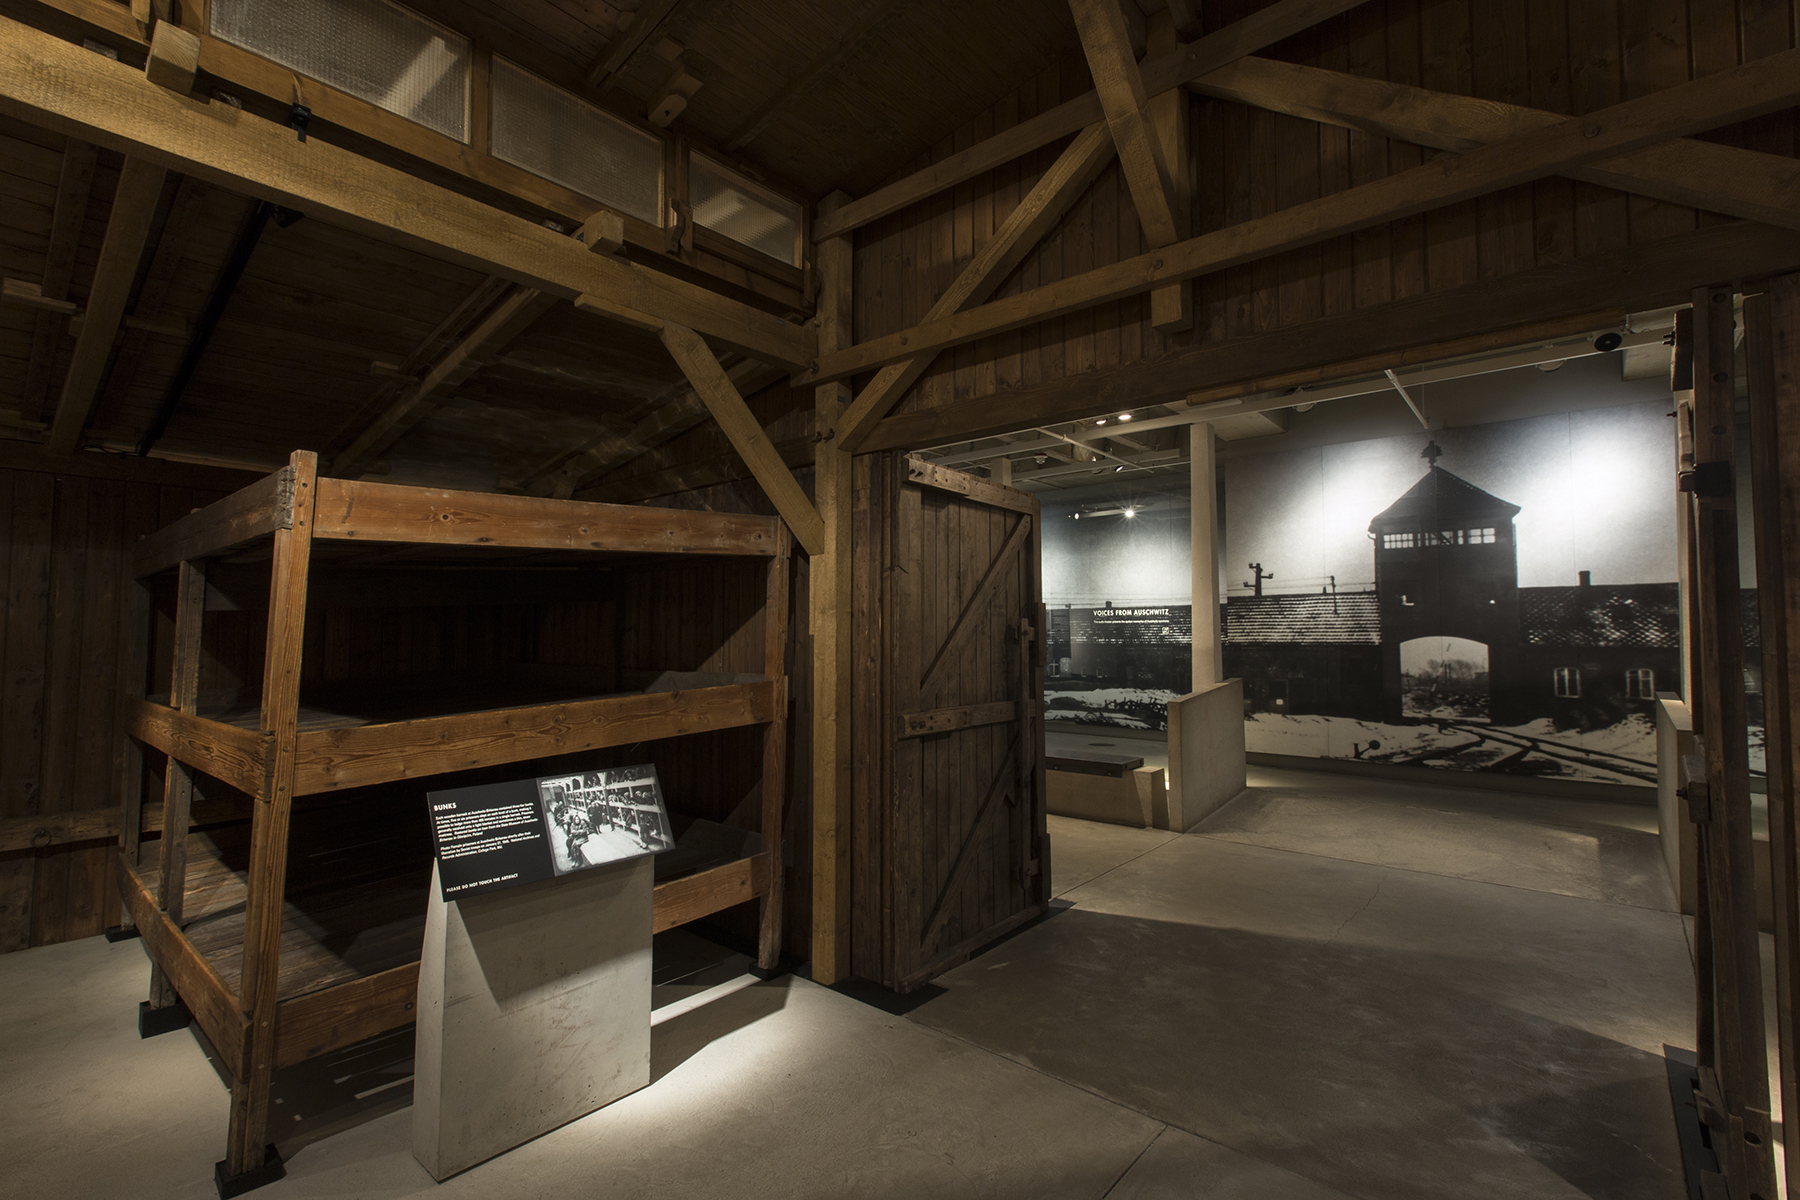 A view of the barracks from Auschwitz-Birkenau in the U.S. Holocaust Museum's permanent exhibition (Photo/Courtesy U.S. Holocaust Memorial Museum)